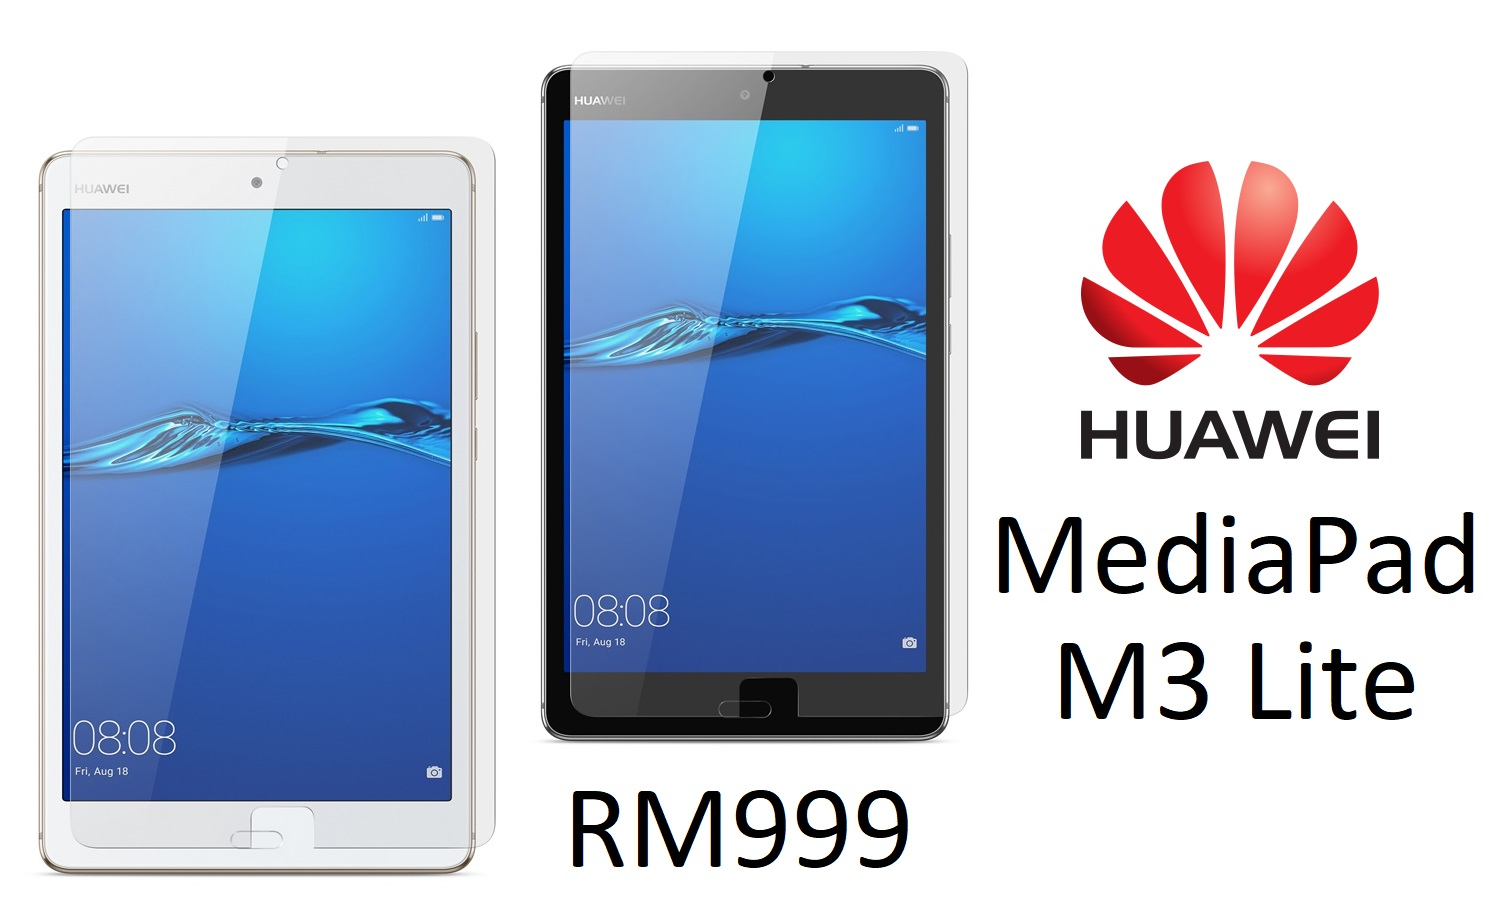 huawei malaysia to release mediapad m3 lite tablet with 4800mah battery for rm999 soon technave. Black Bedroom Furniture Sets. Home Design Ideas